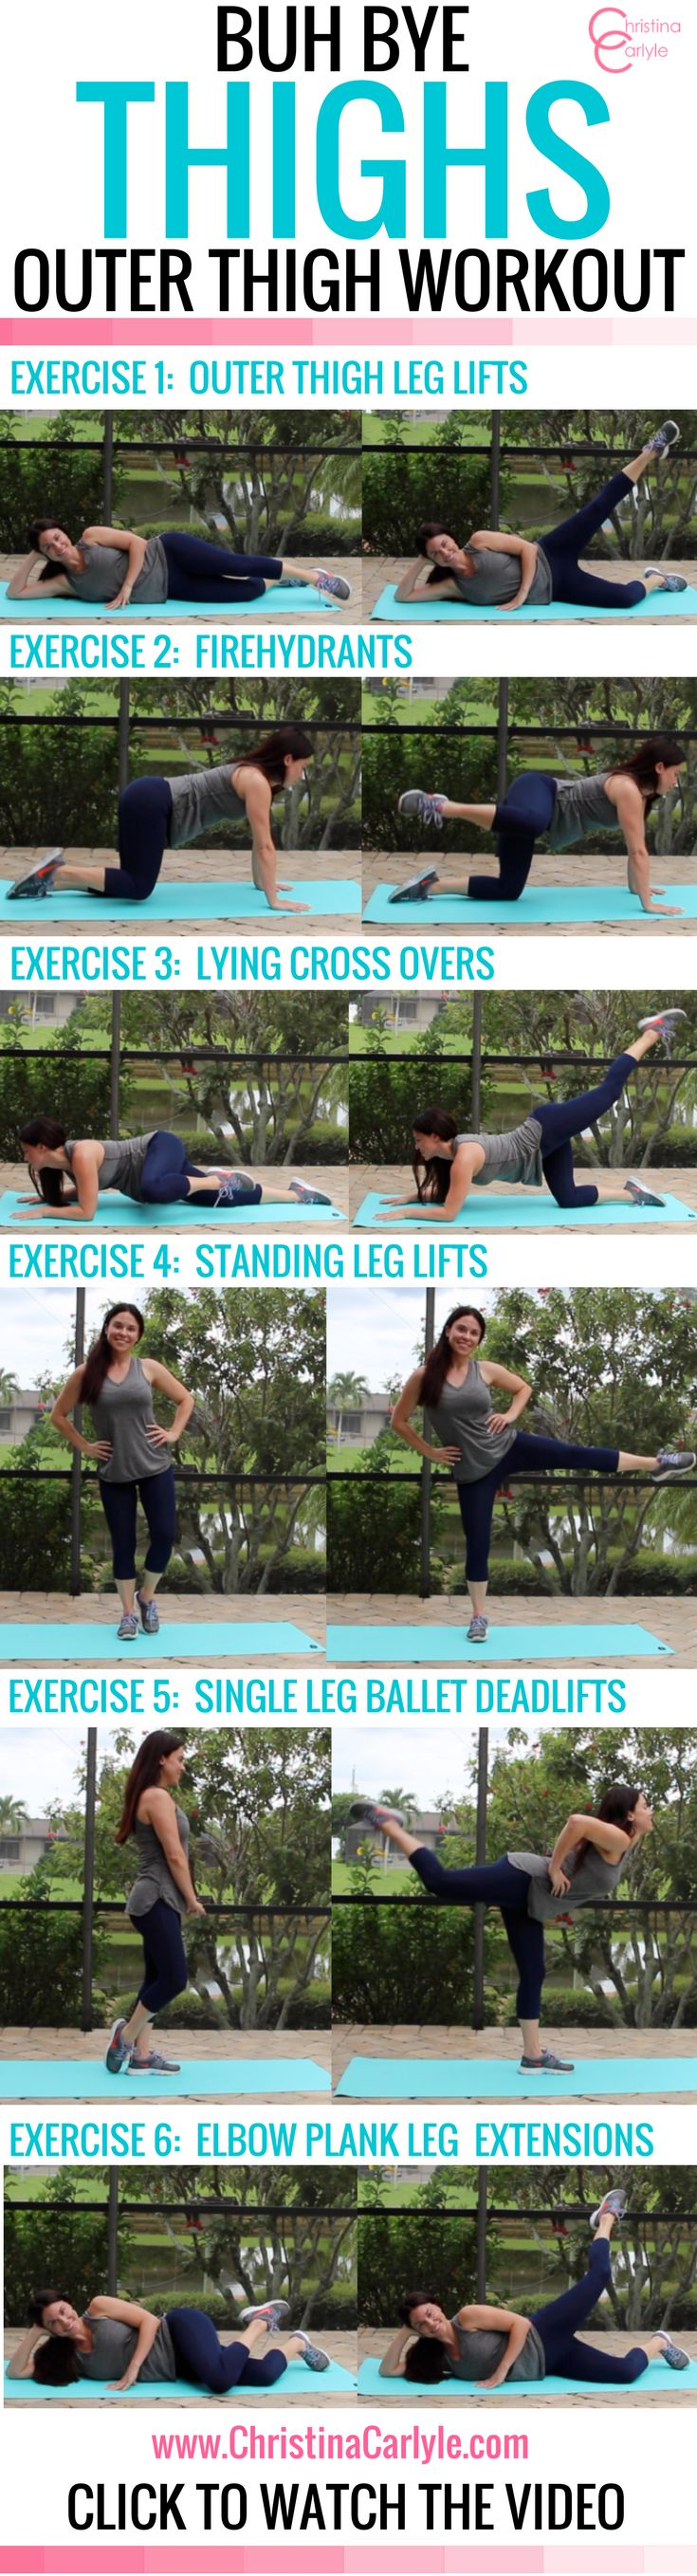 Do your thighs make you self-conscious? If so, you're going to love the thigh Exercises in this Outer Thigh Workout for women. They really work!